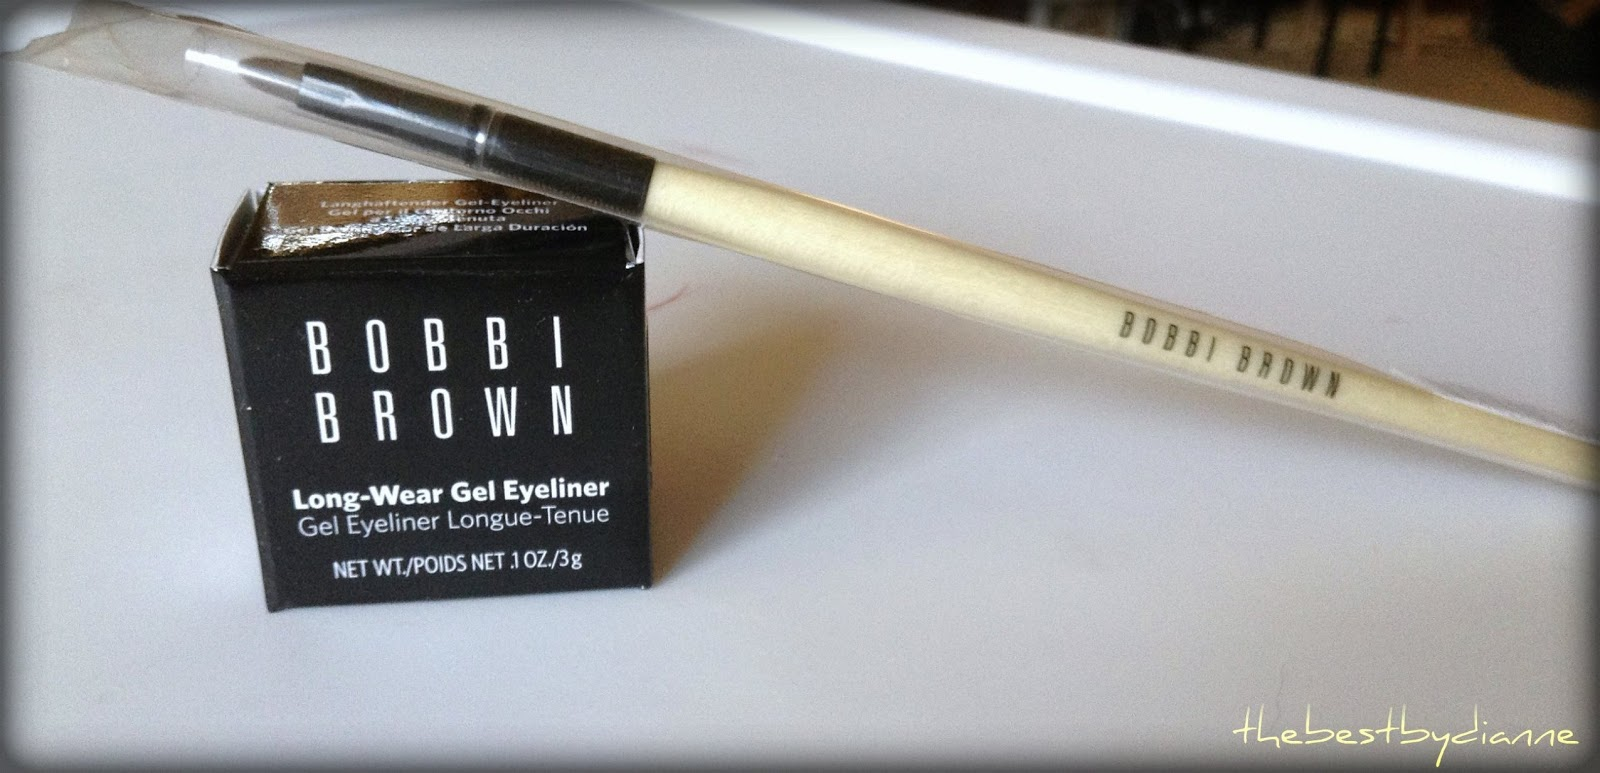 bobbi brown brushes uses. the look: i have a little experience with gel eyeliners and never really been big fan. love my liquid because of how easy they are to use bobbi brown brushes uses